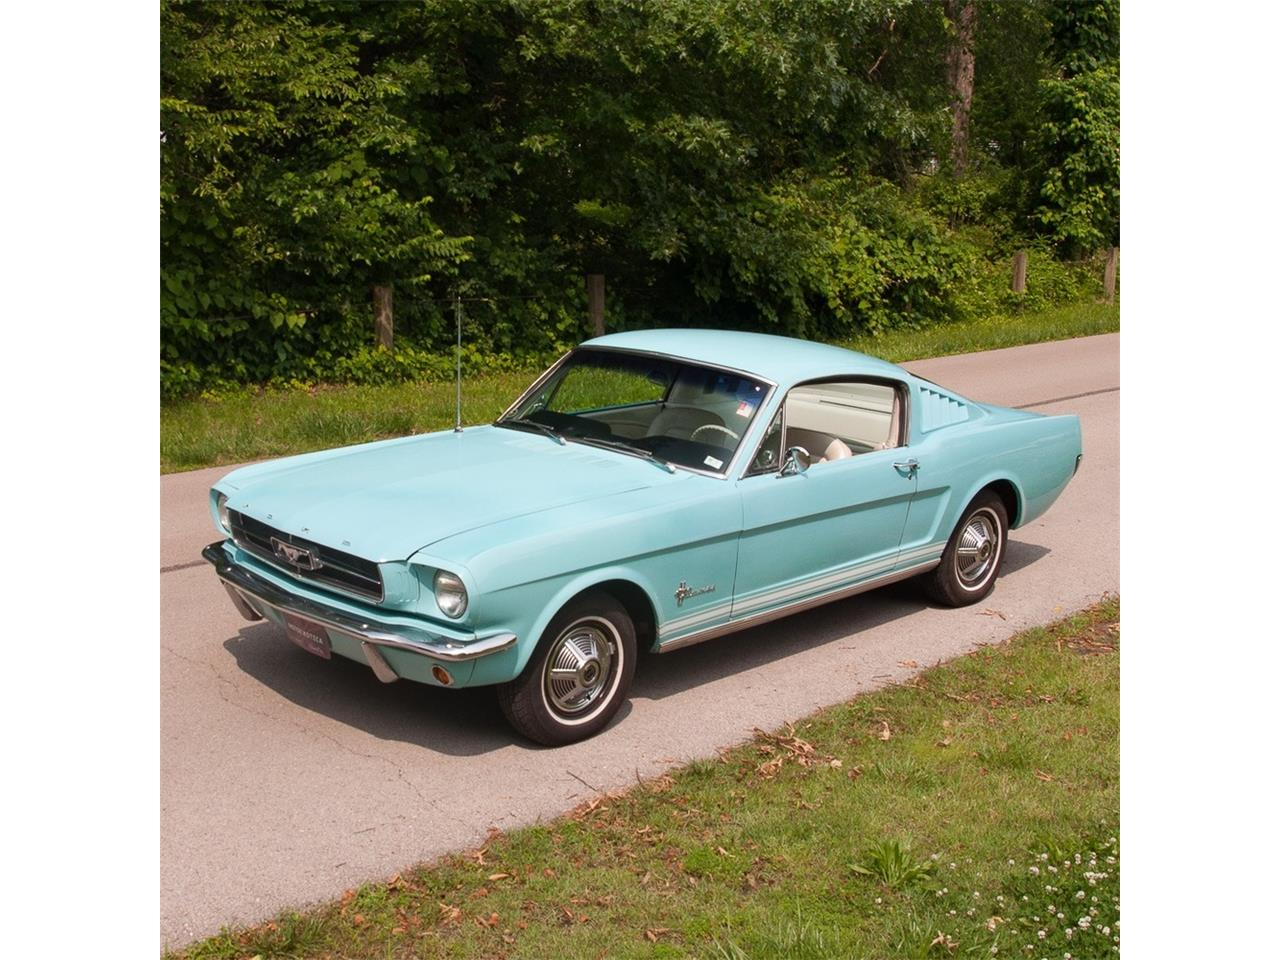 Large Picture of '65 Mustang - OBU0